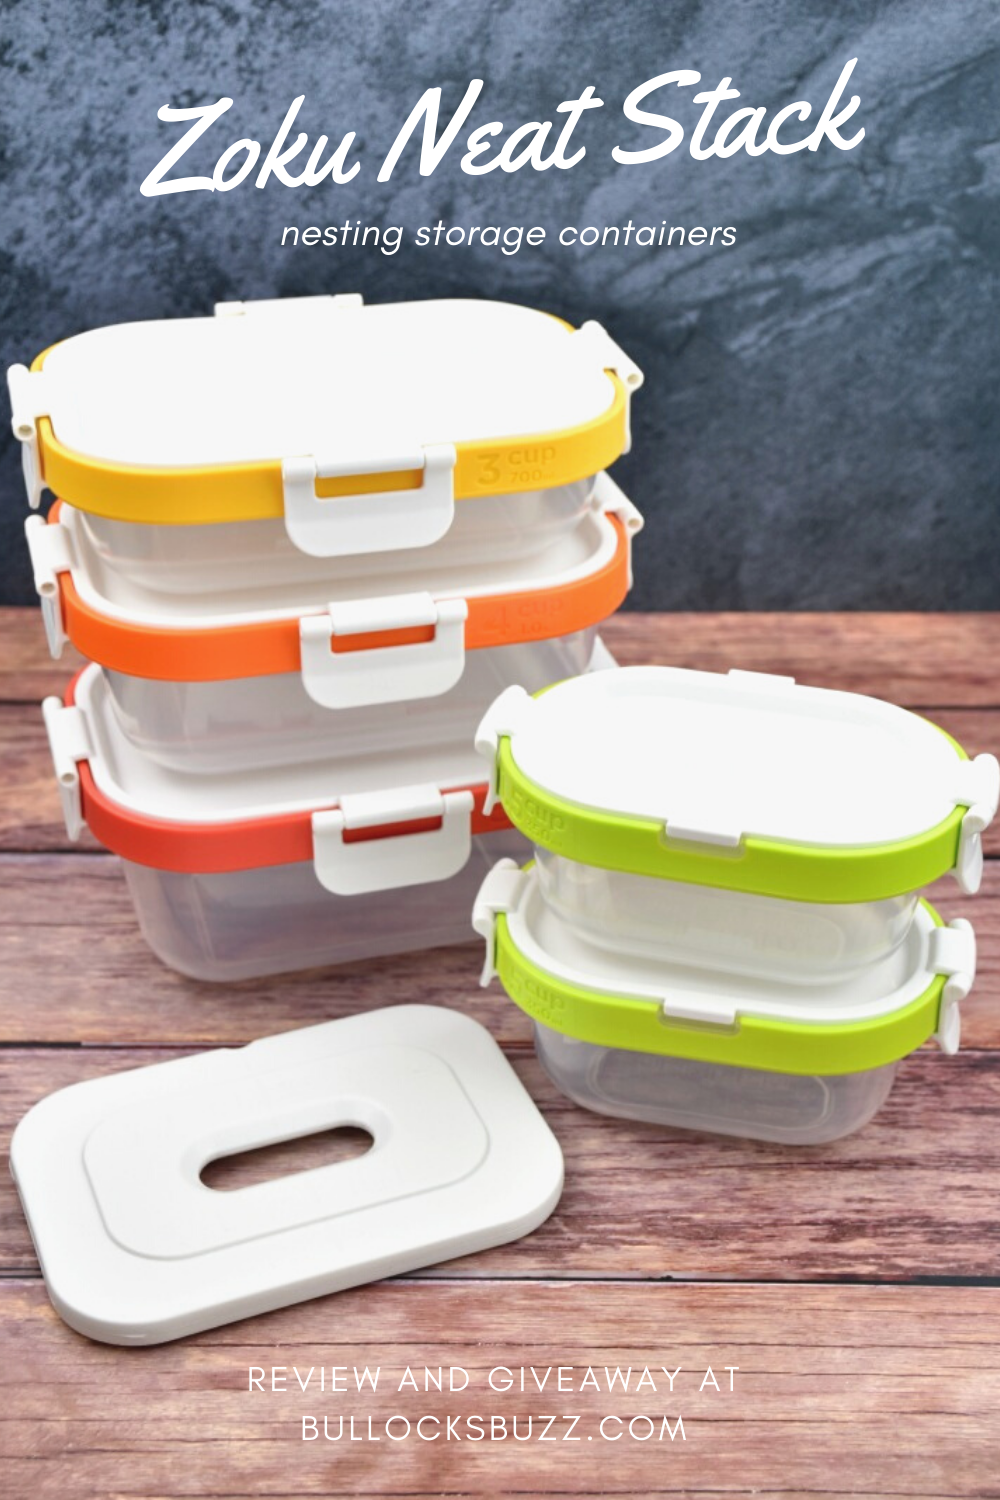 AD I usually do not get excited about storage containers, but Zoku's Neat Stack Nesting Storage Containers are unlike any storage container set I've had.